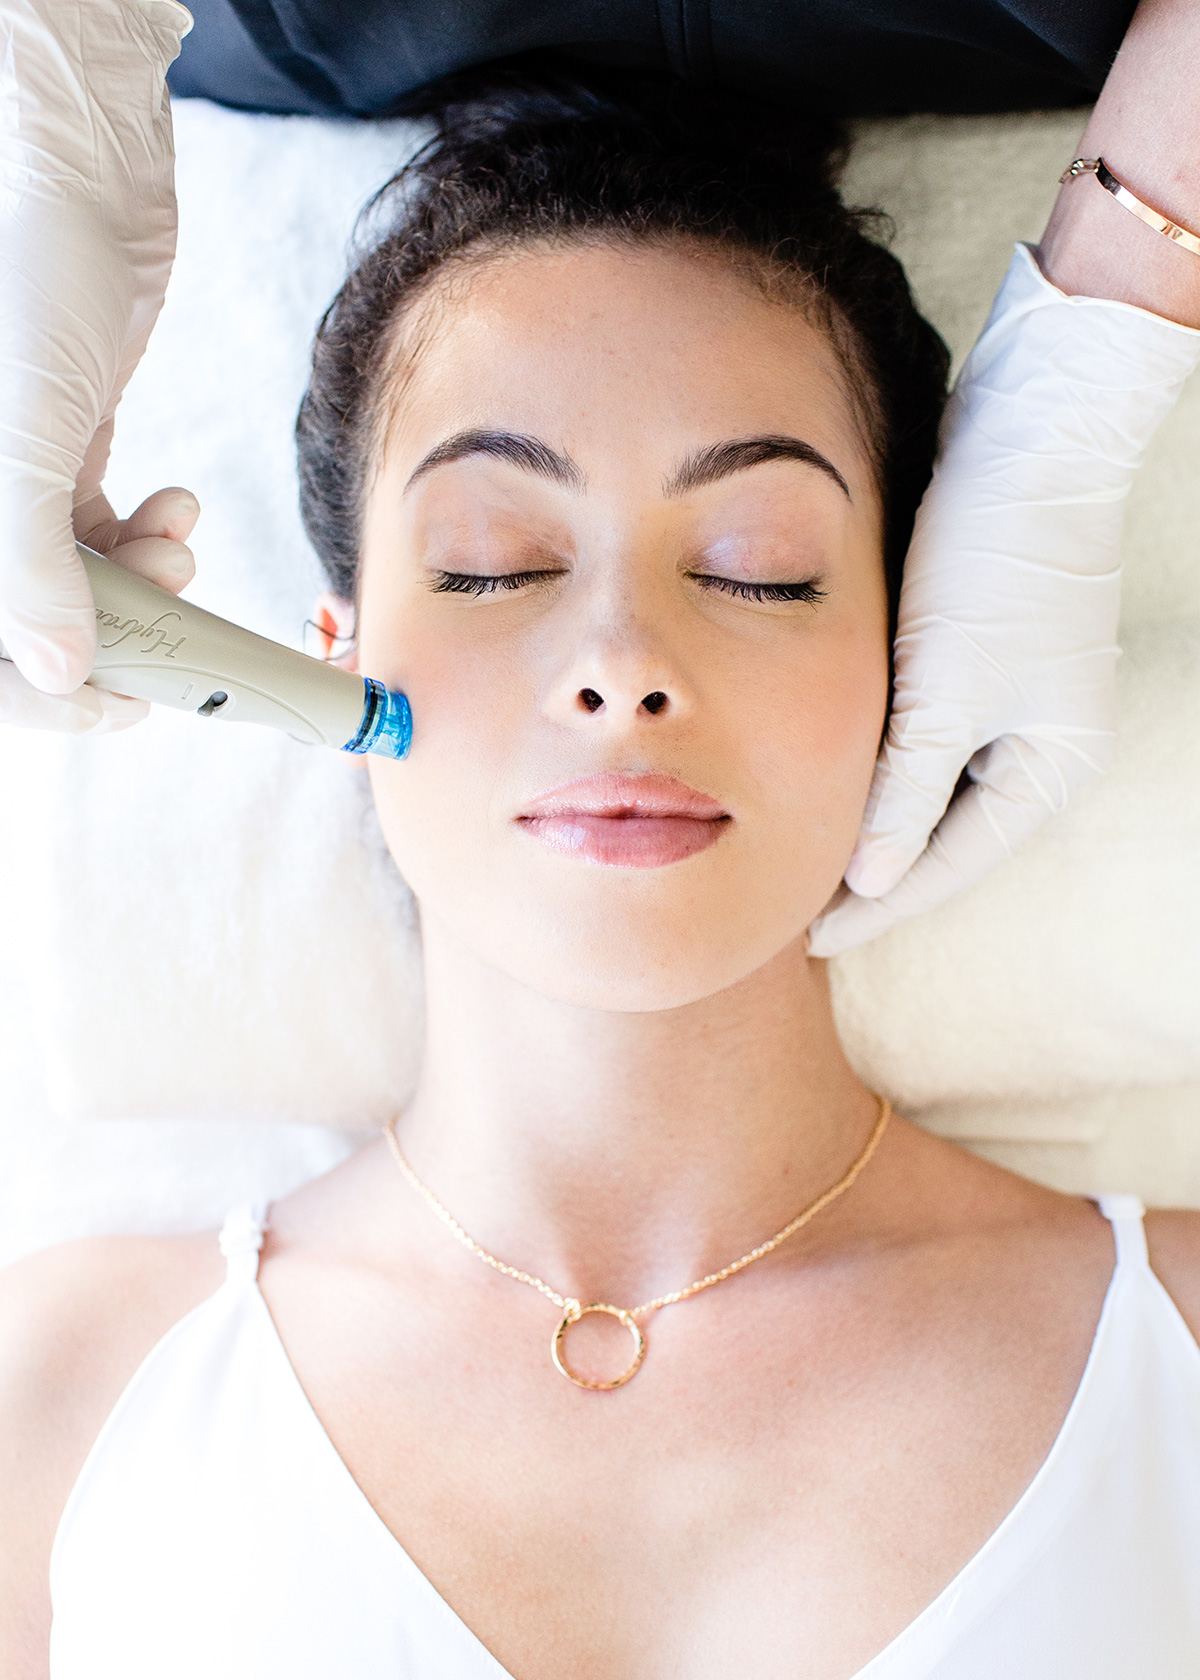 The HydraFacial Event has ended. - Check back for more specials soon!